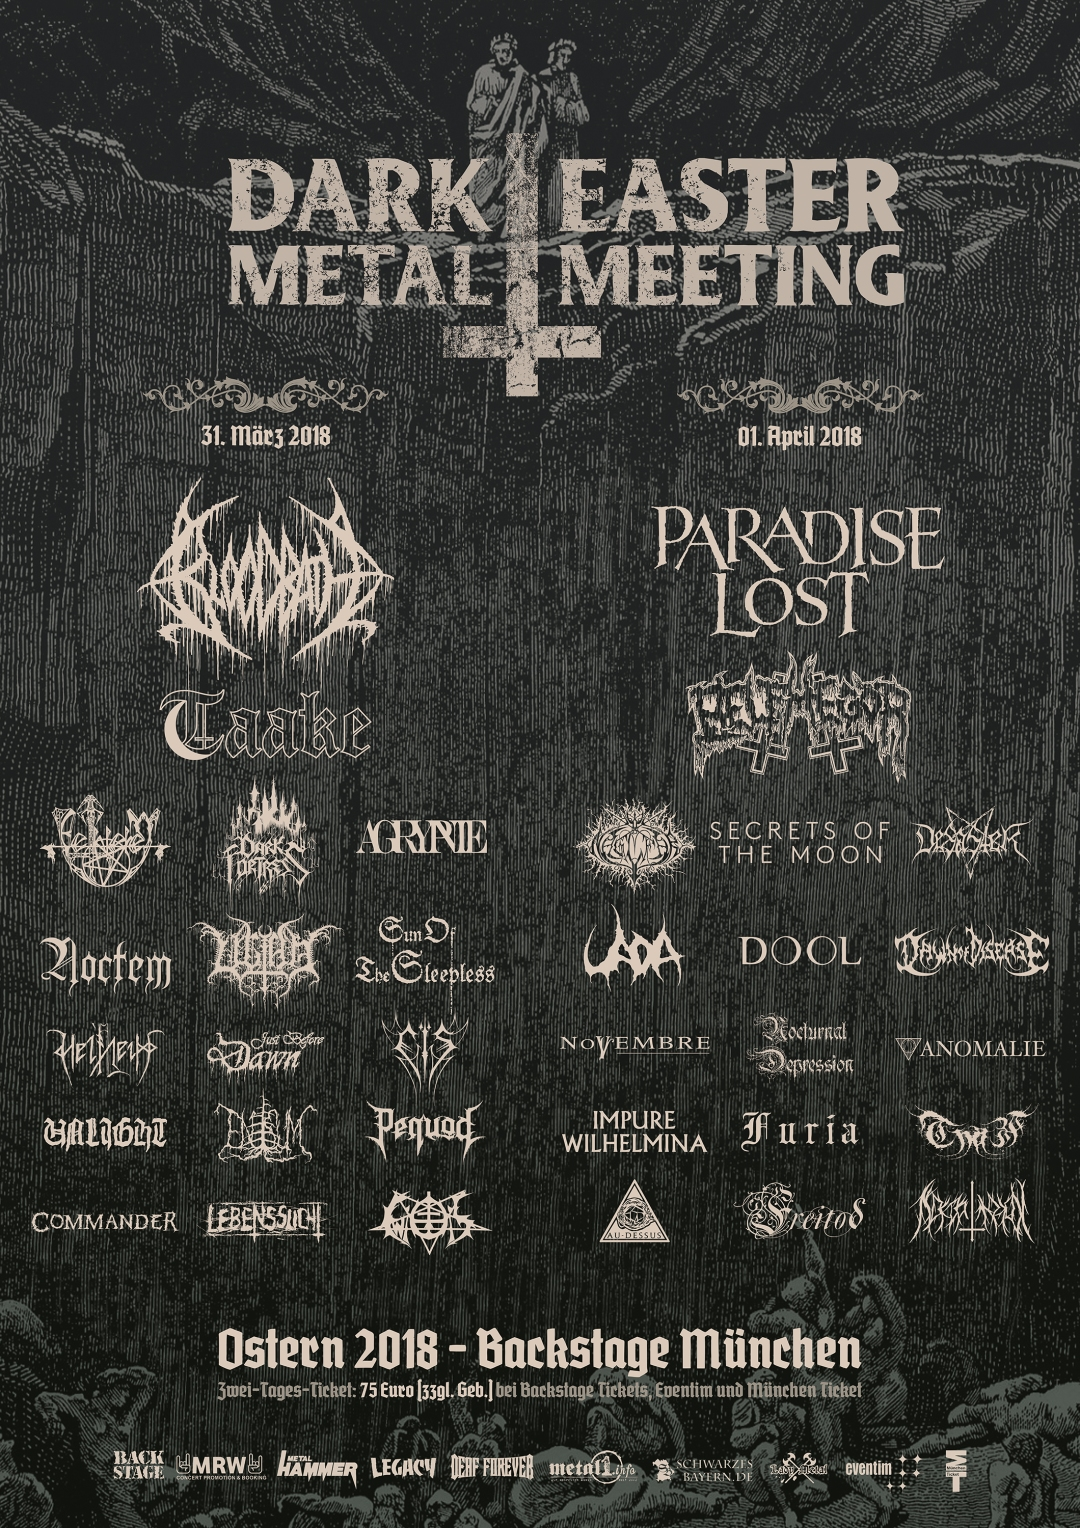 Dark Easter Metal Meeting 2018 Plakat NEU